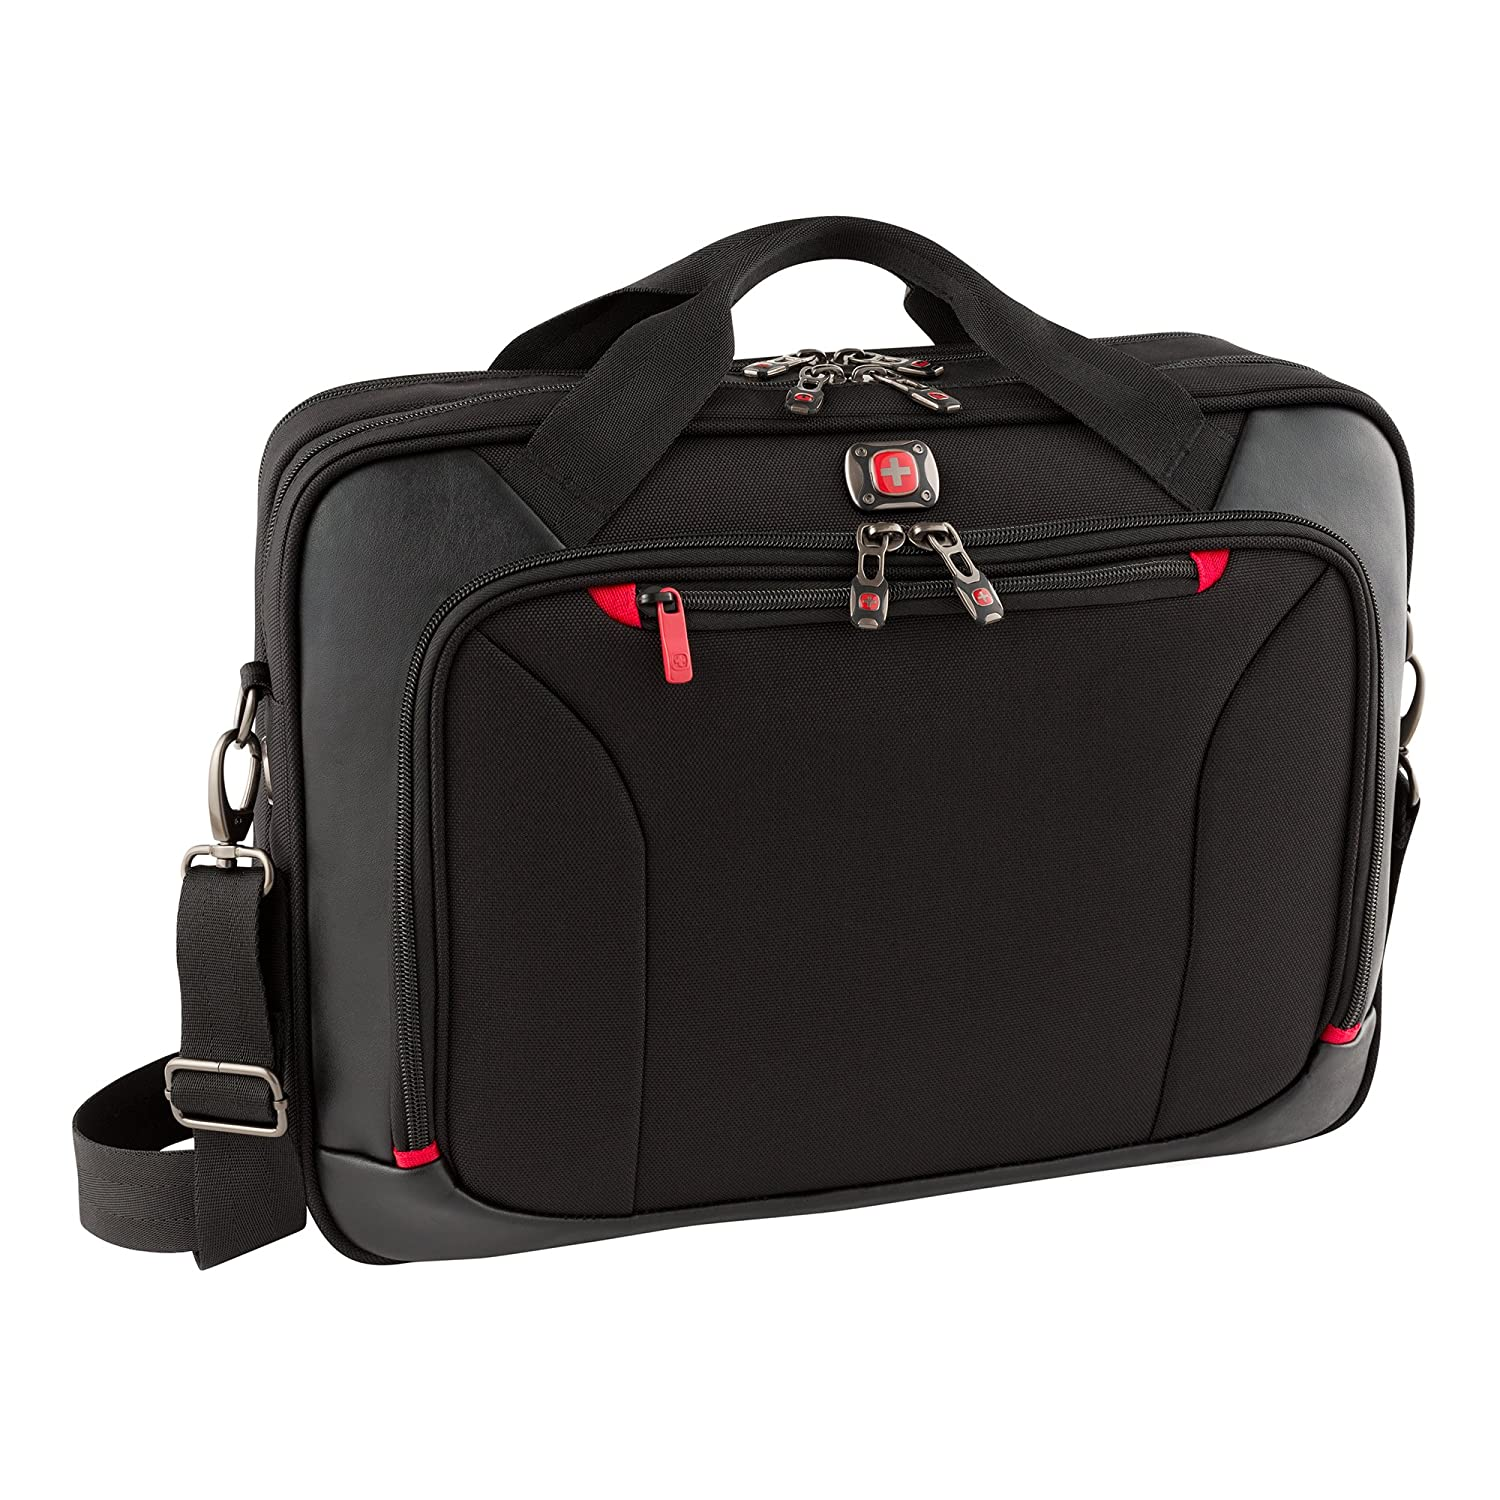 Victorinox Luggage Highwire Deluxe 28373001 High Wire 17 Laptop Briefcase, Black, One Size Wenger/Avenues